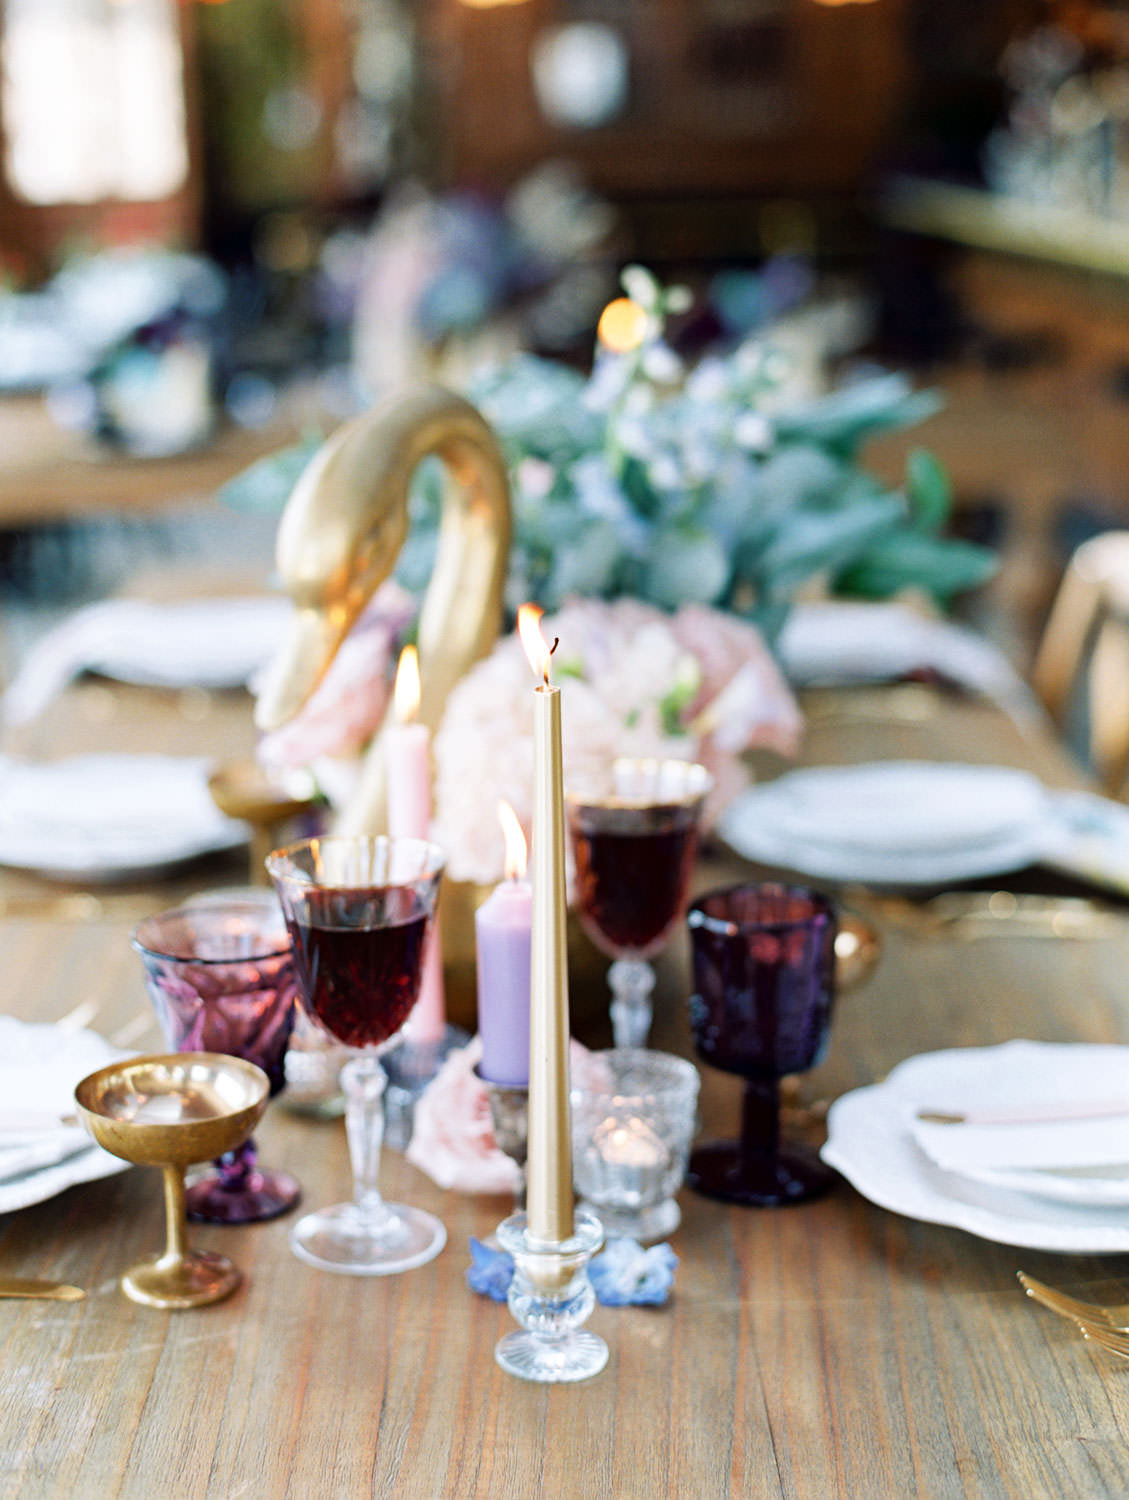 Deep purple water glass, gold coupe, crystal wine glass paired with gold flatware. Golden geese vases with ivory and blush flowers. Golden taper candle. Polite Provisions event. Cavin Elizabeth Photography.